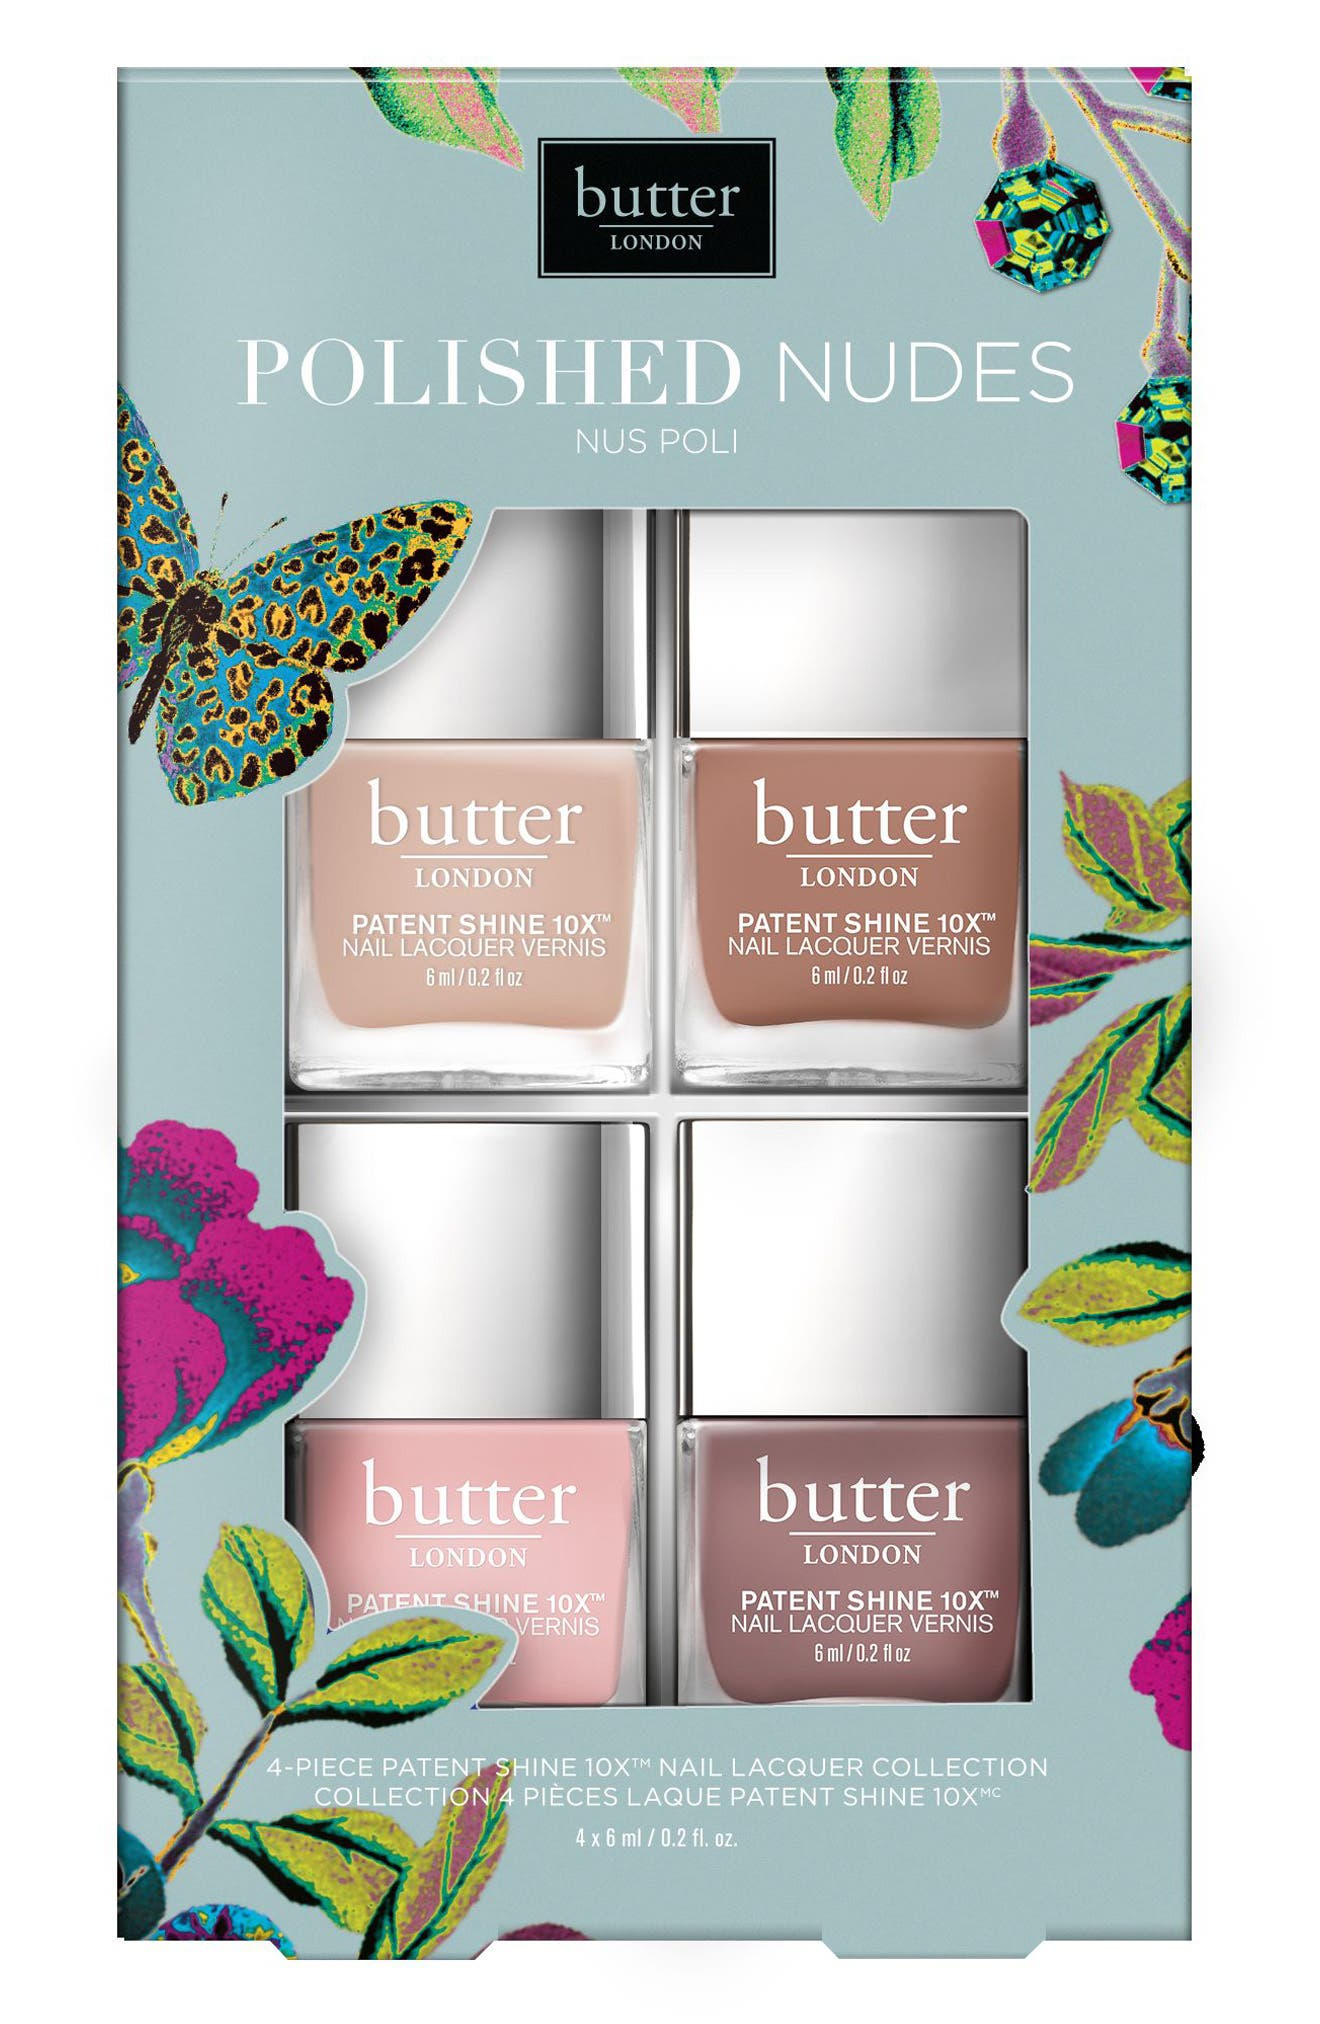 Alternate Image 1 Selected - butter LONDON Polished Nudes Patent Shine 10x™ Nail Lacquer Set (Limited Edition) (Nordstrom Exclusive)